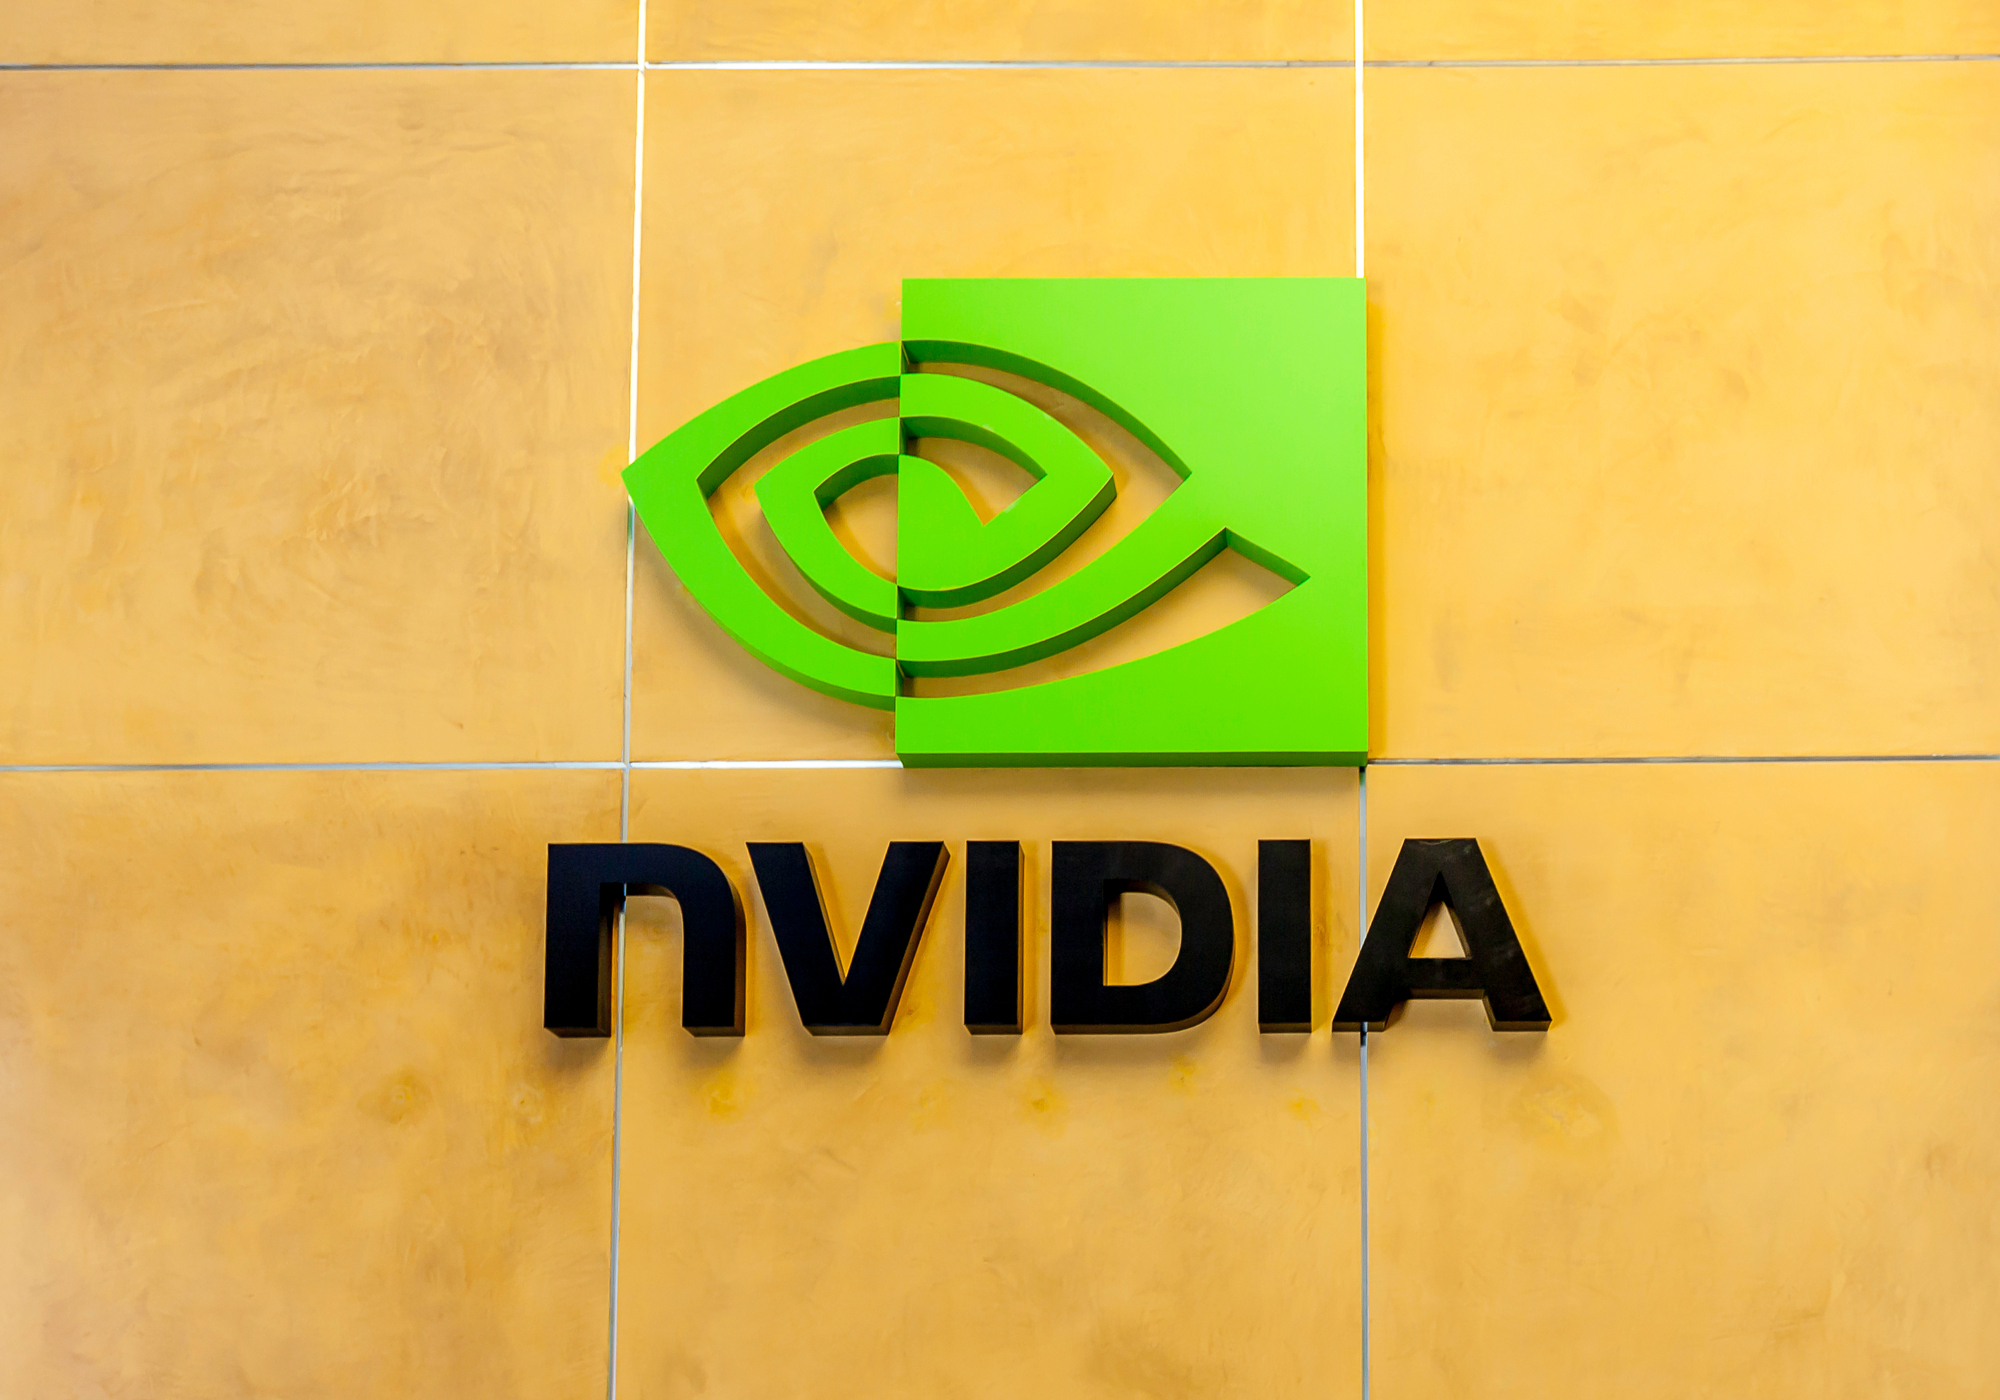 Nvidia's robust Q1 earnings underscore its pandemic resilience